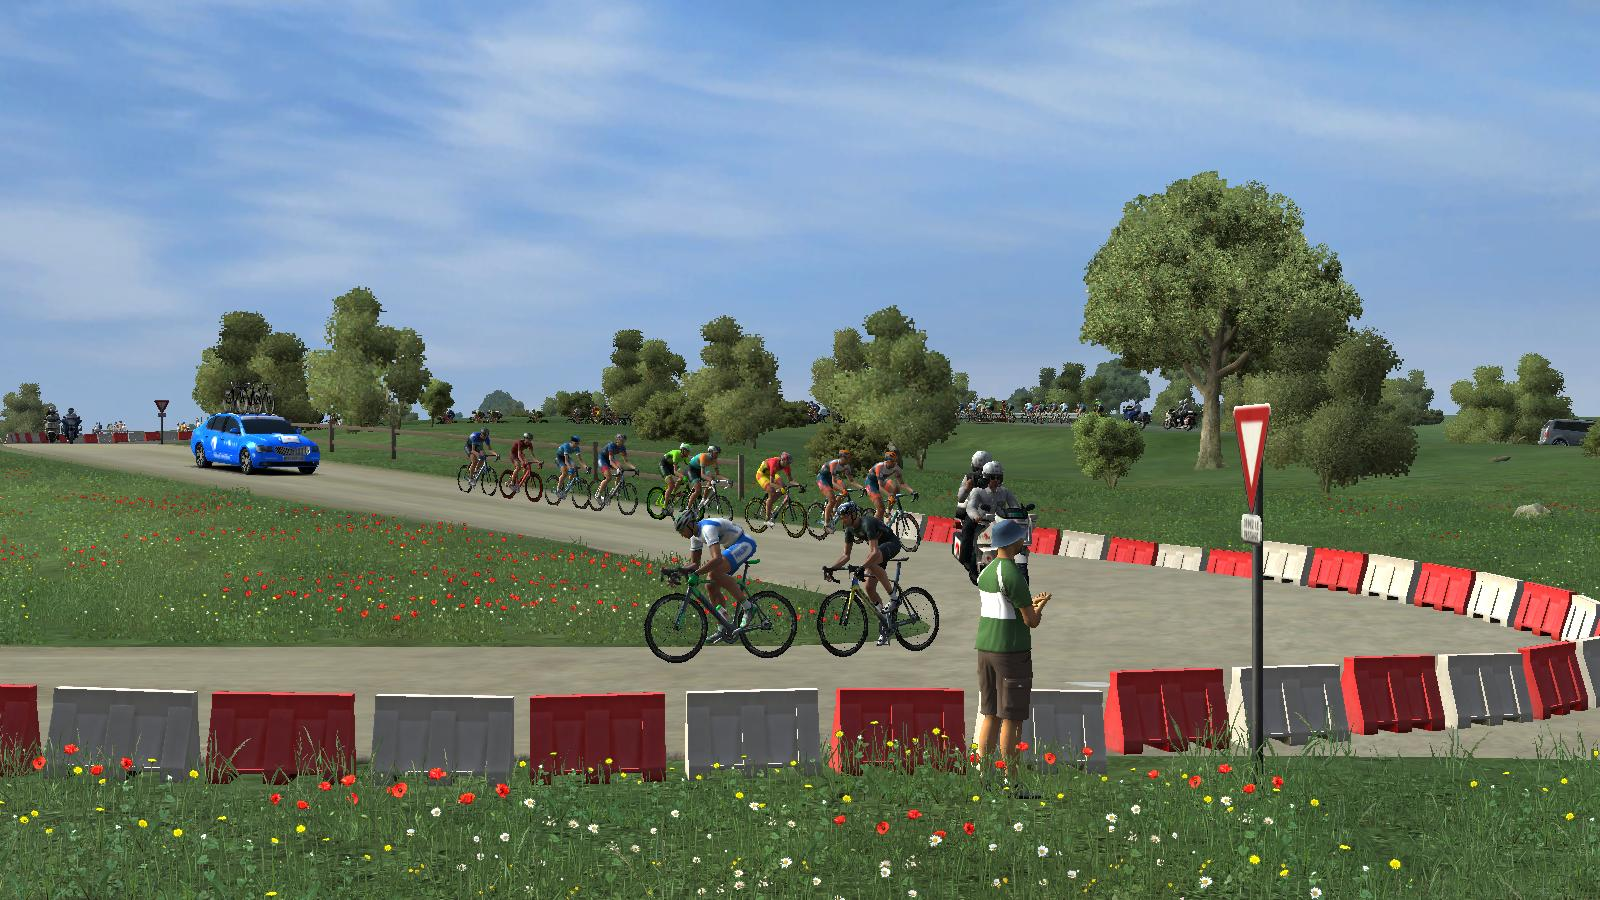 pcmdaily.com/images/mg/2019/Races/PTHC/Rheden/18.jpg